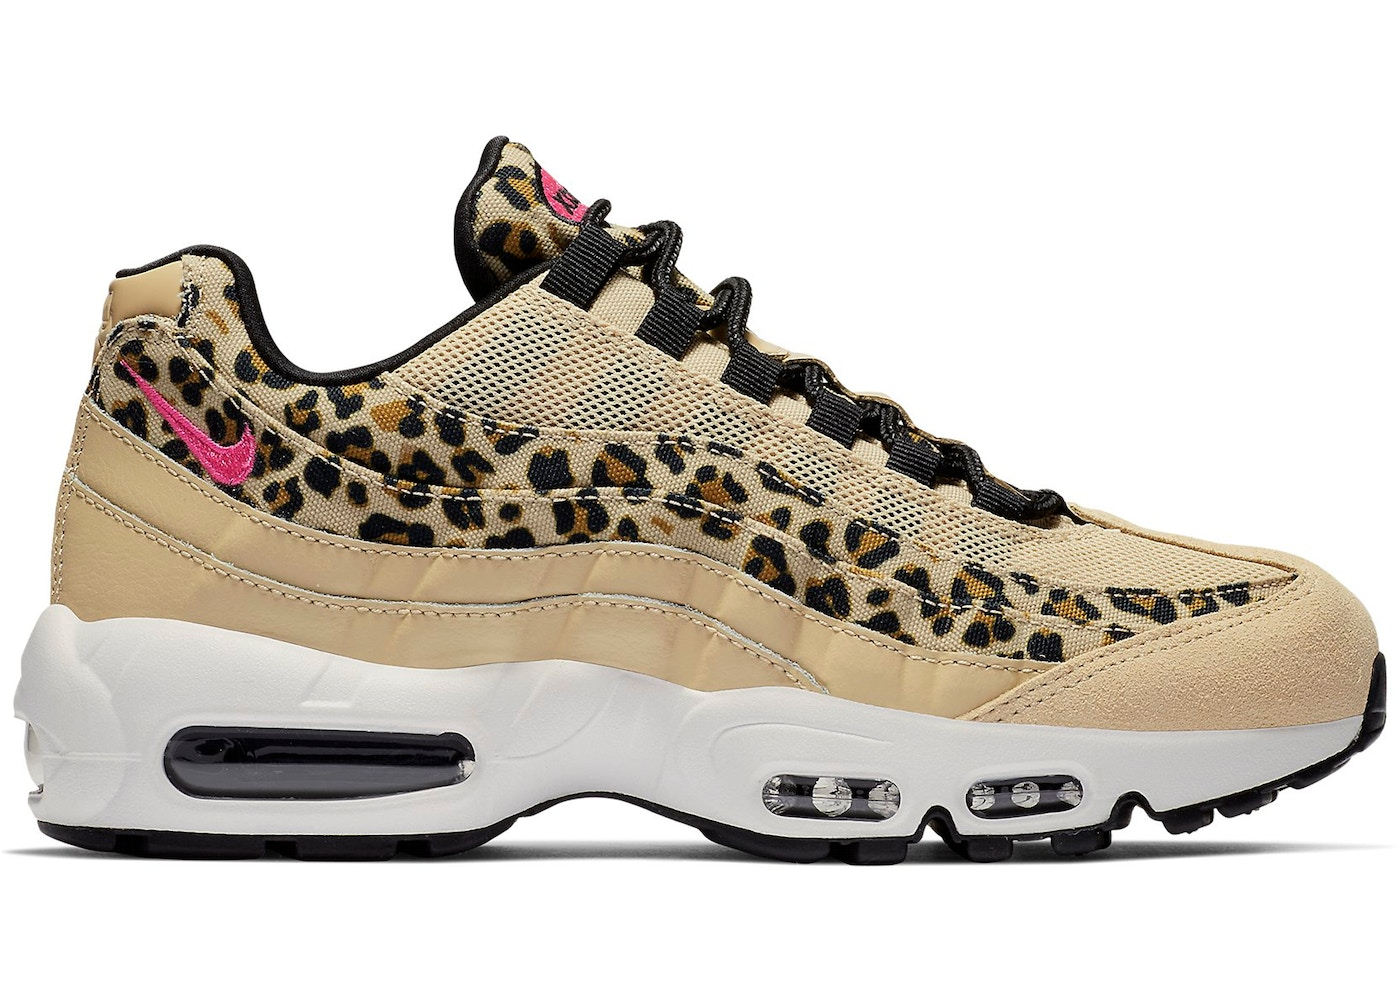 9e4233fbbb Buy Nike Air Max 95 Shoes & Deadstock Sneakers